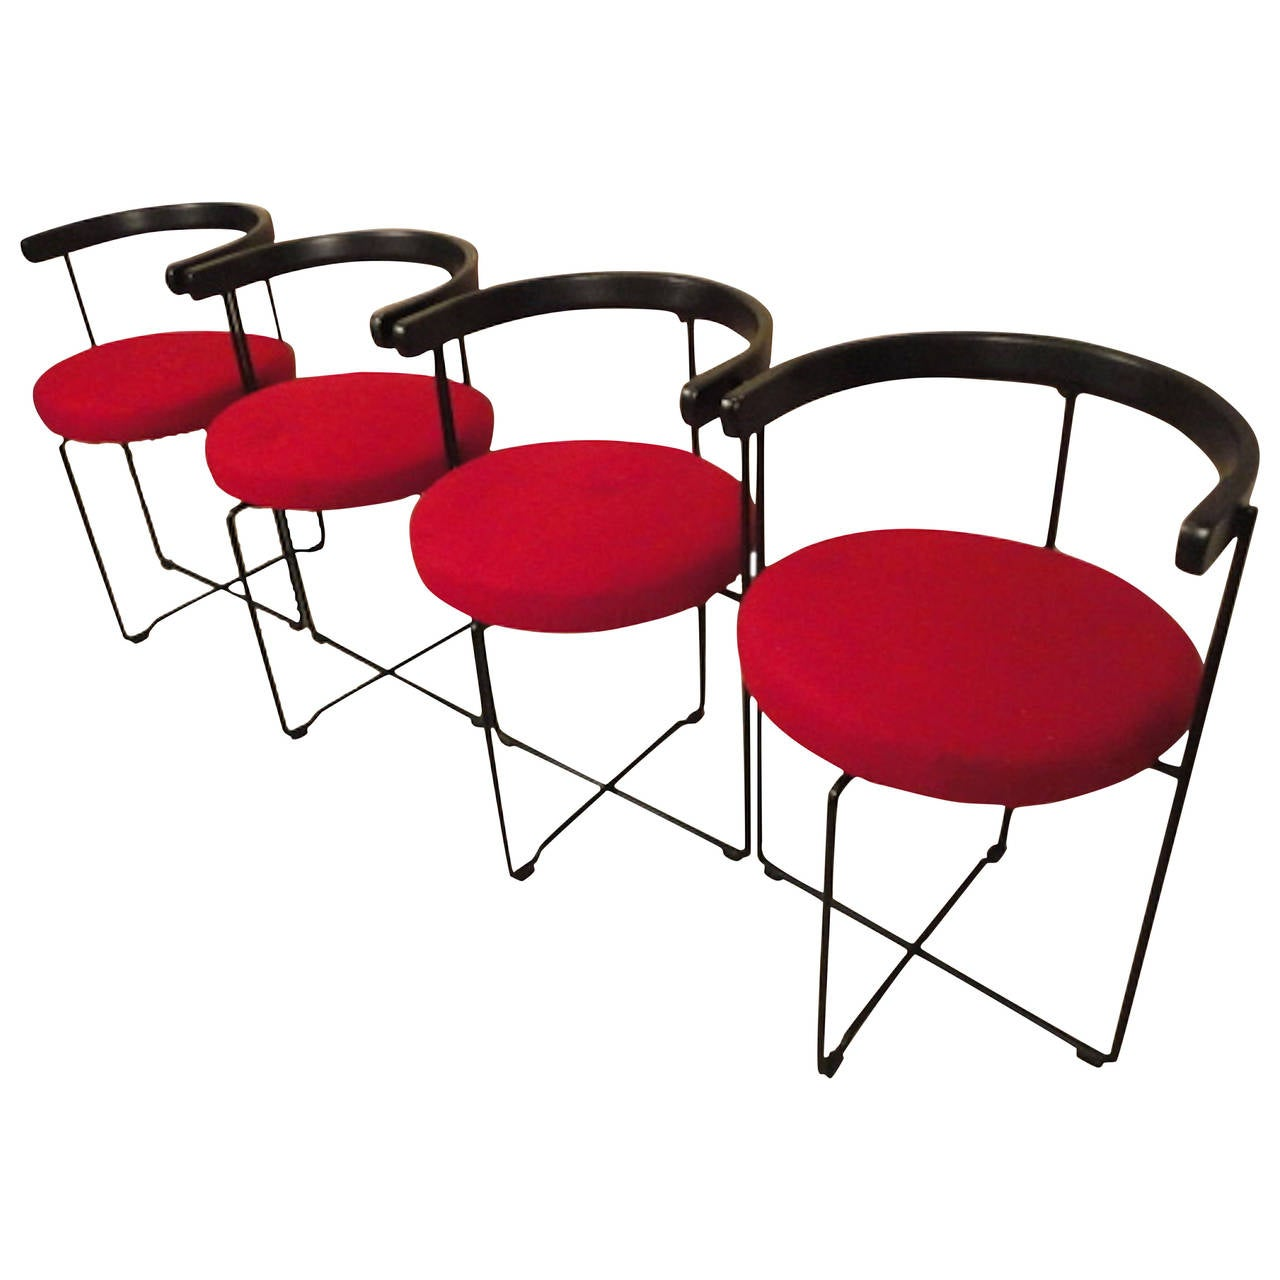 Four Mid Century Modern Style Round Back Chairs For Sale